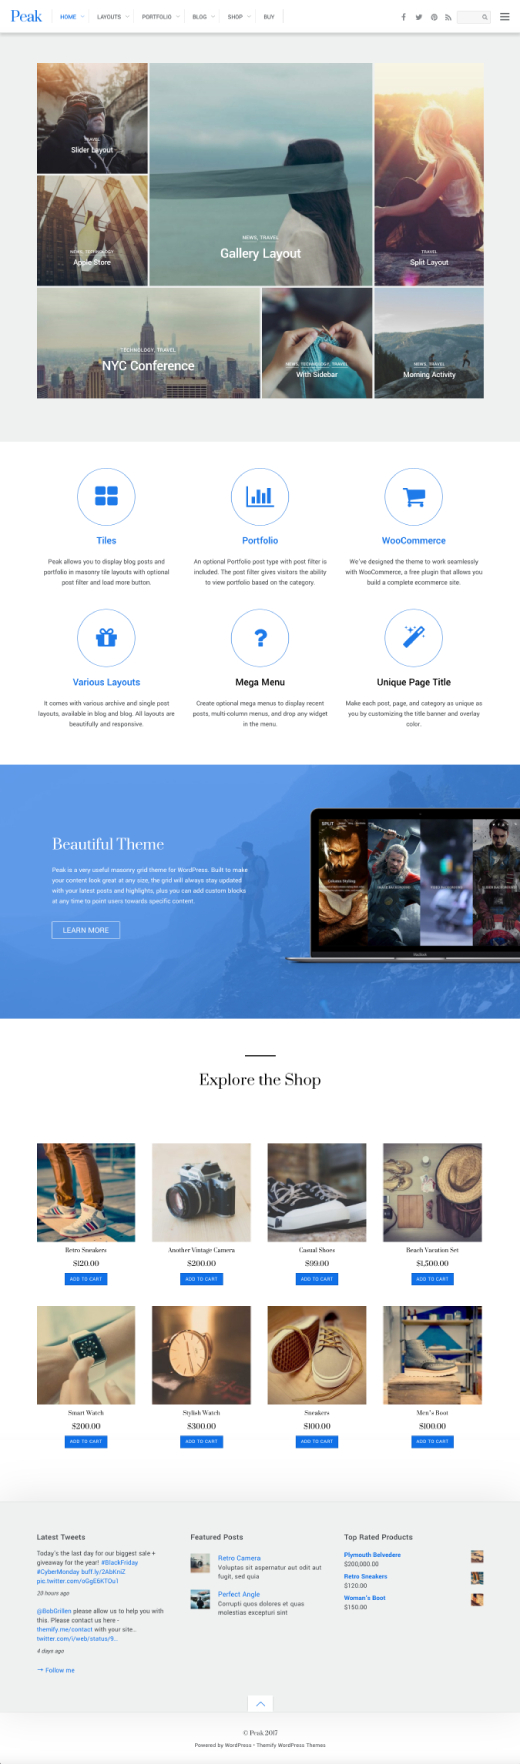 Peak - A modern grid based WordPress theme